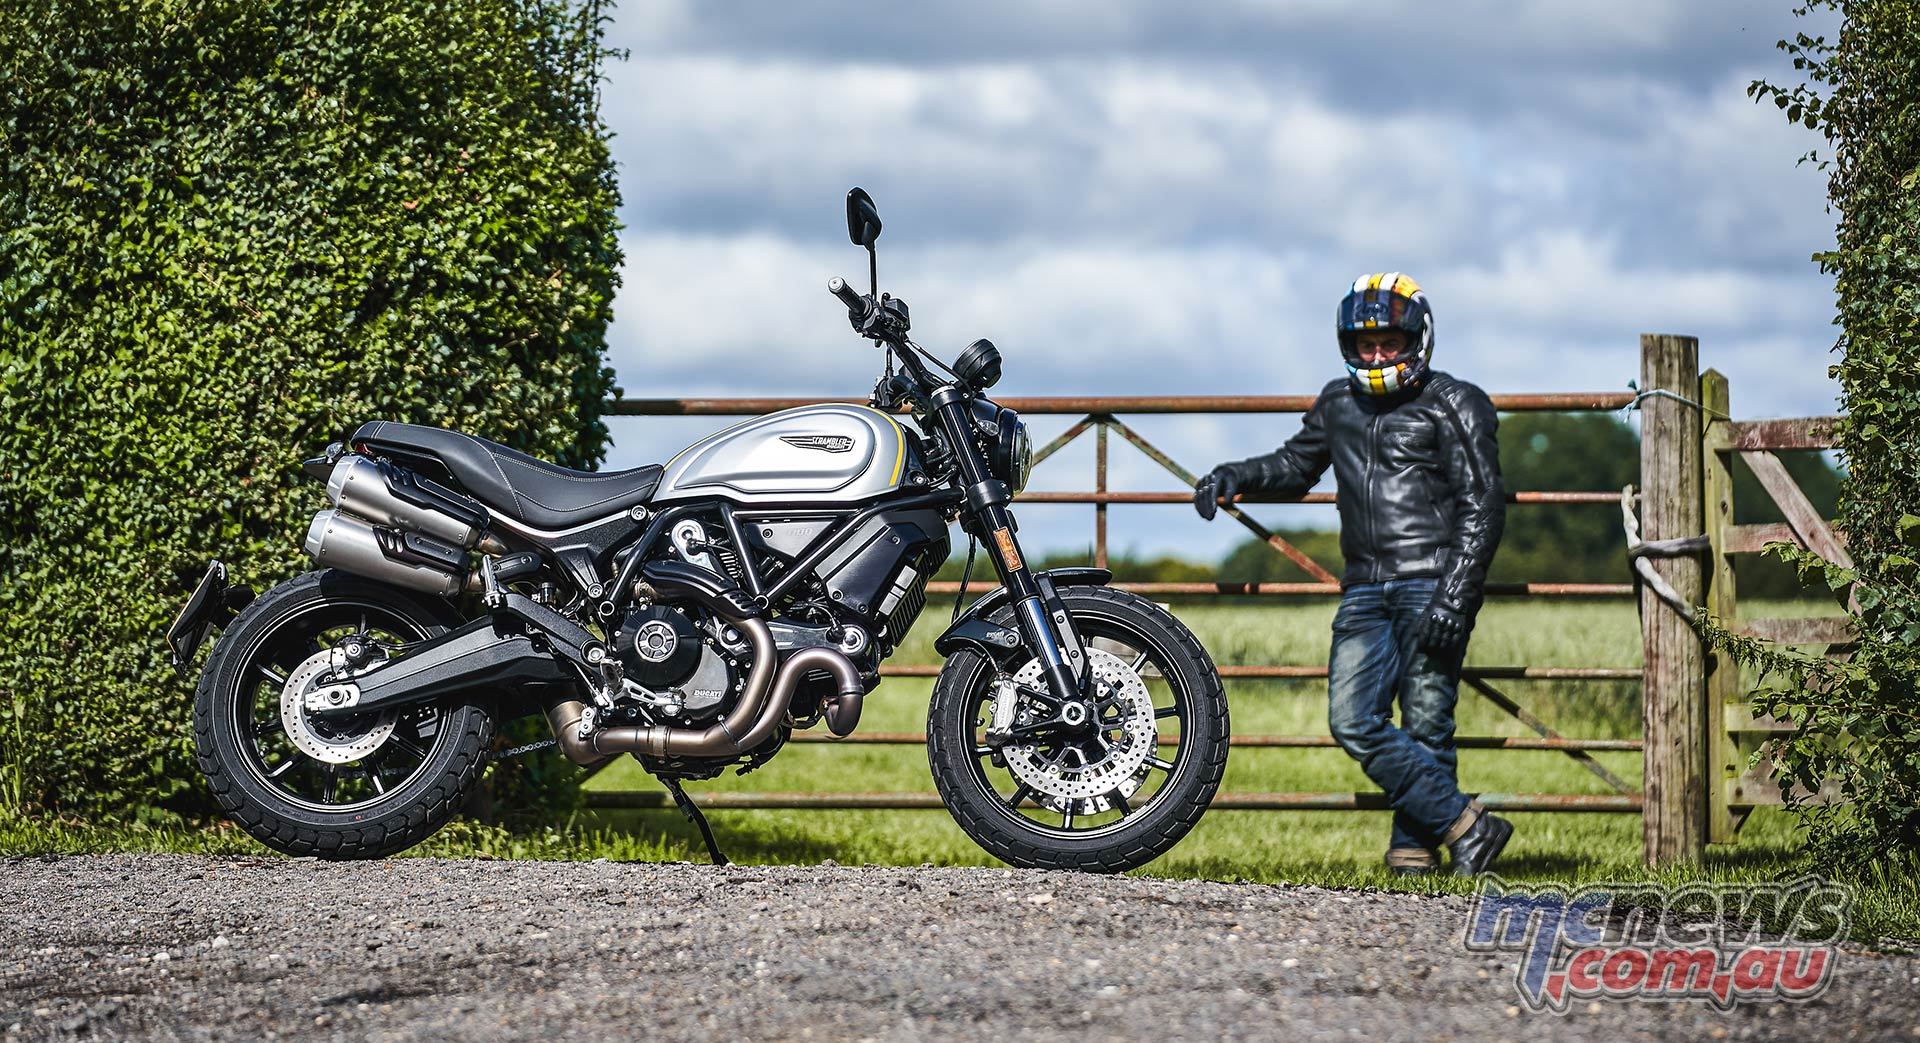 2021 Ducati Scrambler 1100 Pro is perhaps even more handsome than its Ohlins suspended richer Sport Pro sibling